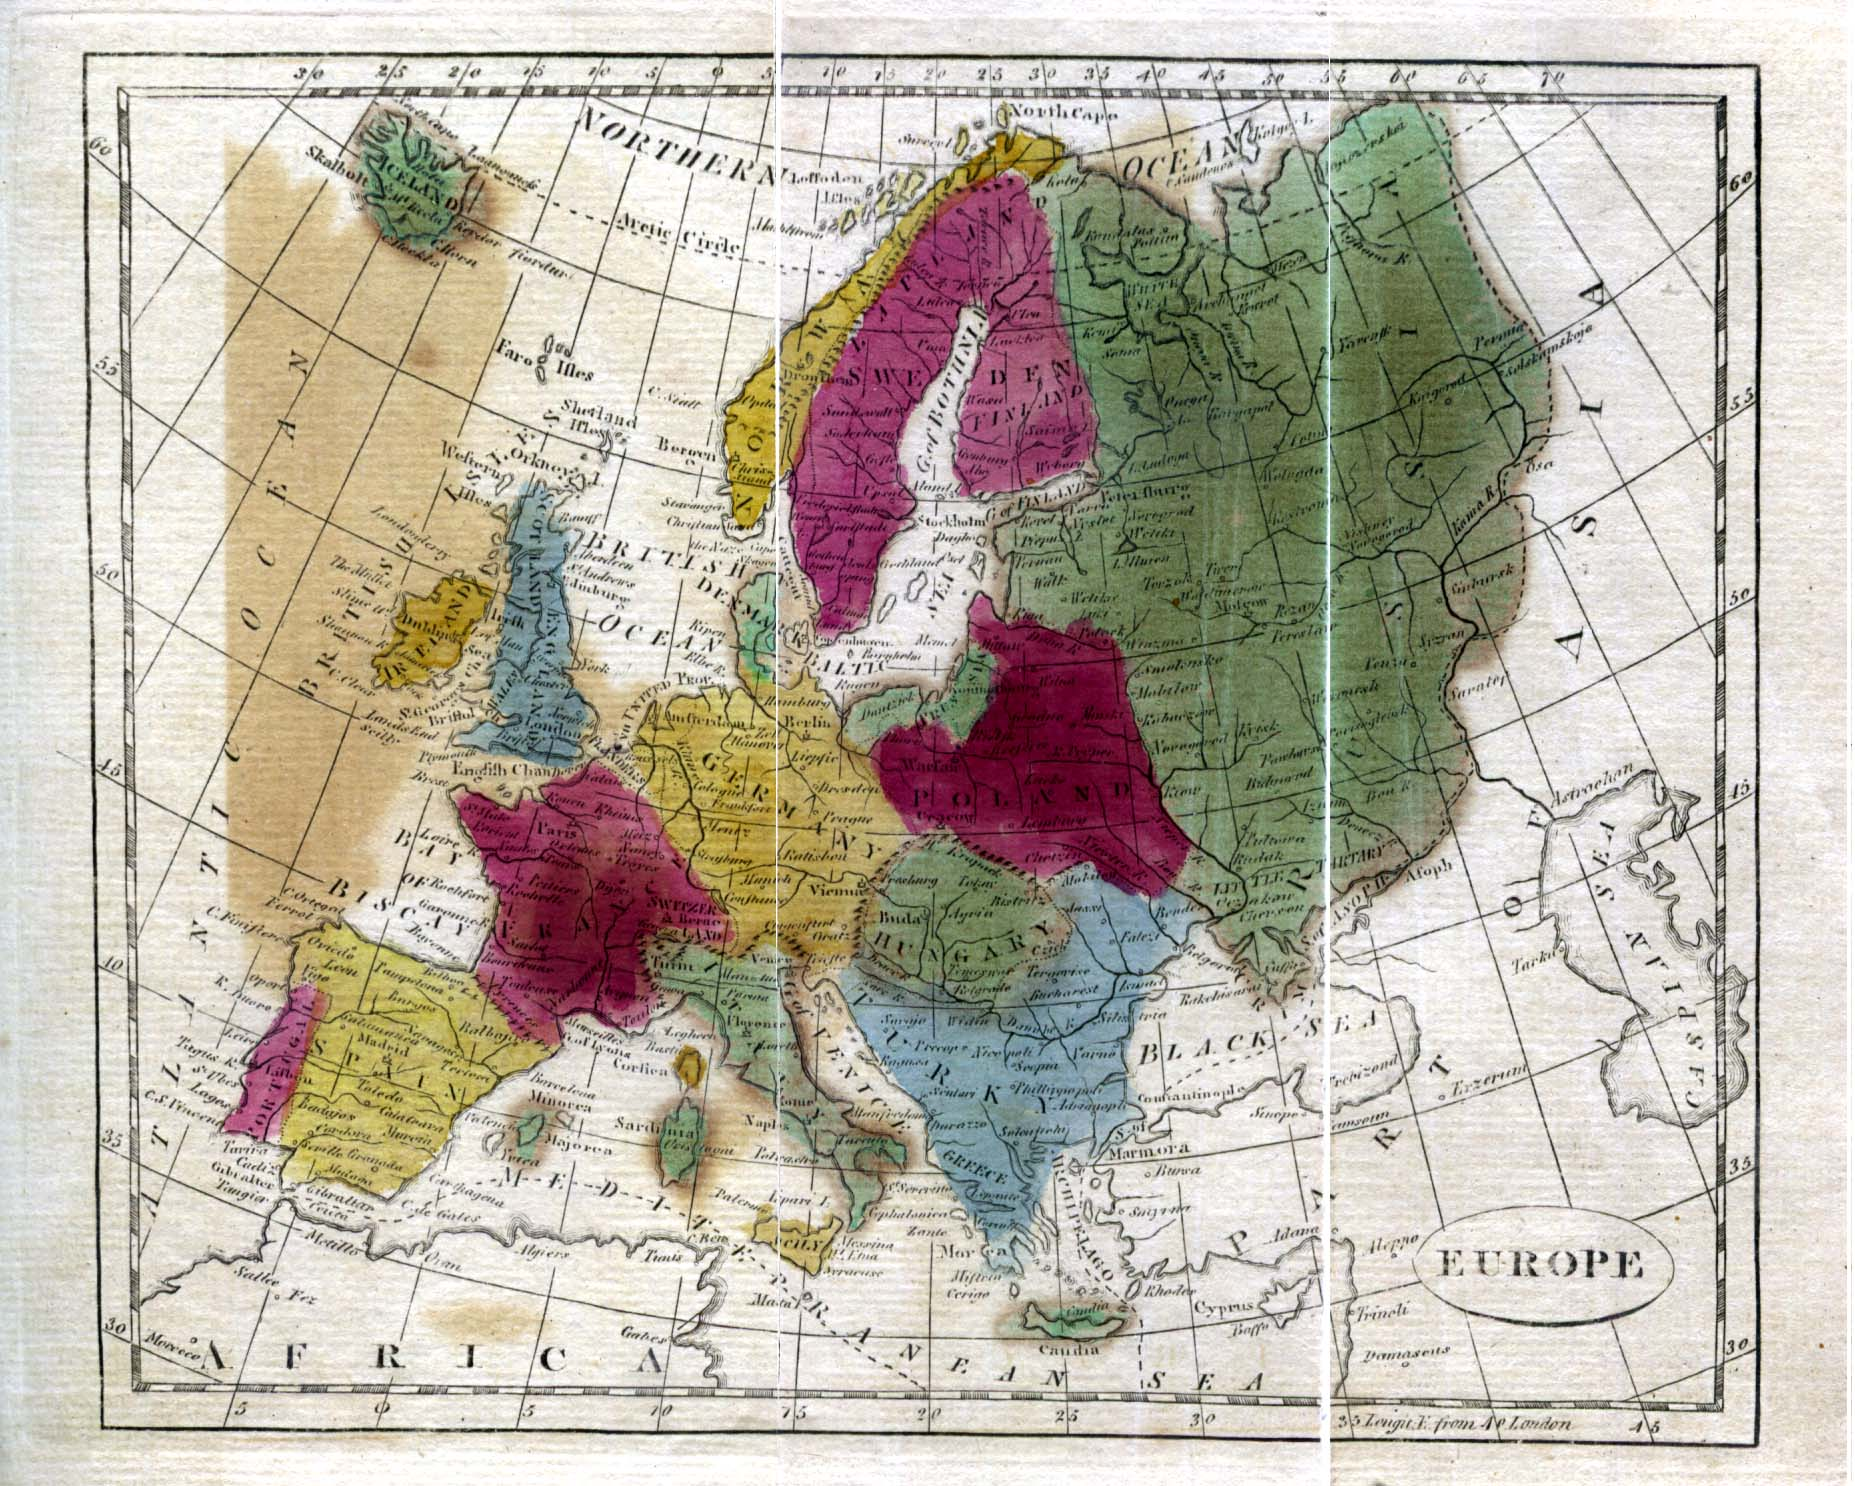 Historical Maps of Europe. Europe 1808 (516K) From The General Gazetteer; or, Compendious Geographical Dictionary. Compiled by R. Brookes, Revised by W. Guthrie and E. Jones. Eighth Edition, Dublin, 1808